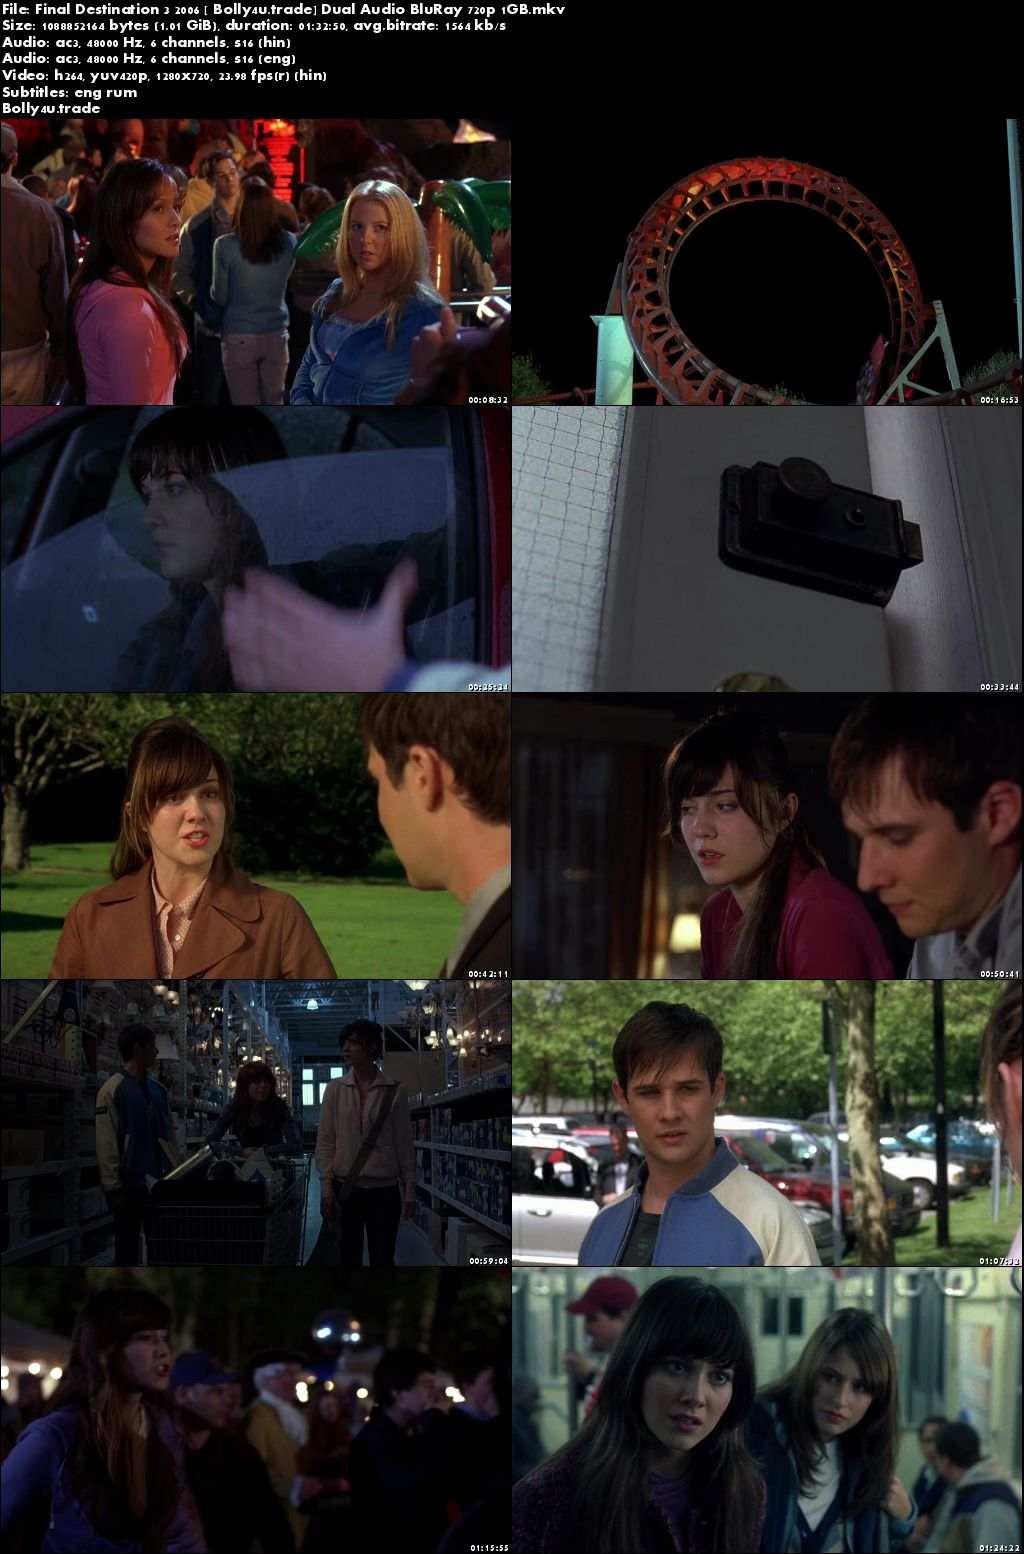 Final Destination 3 2006 BluRay 1GB Hindi Dual Audio 720p Download